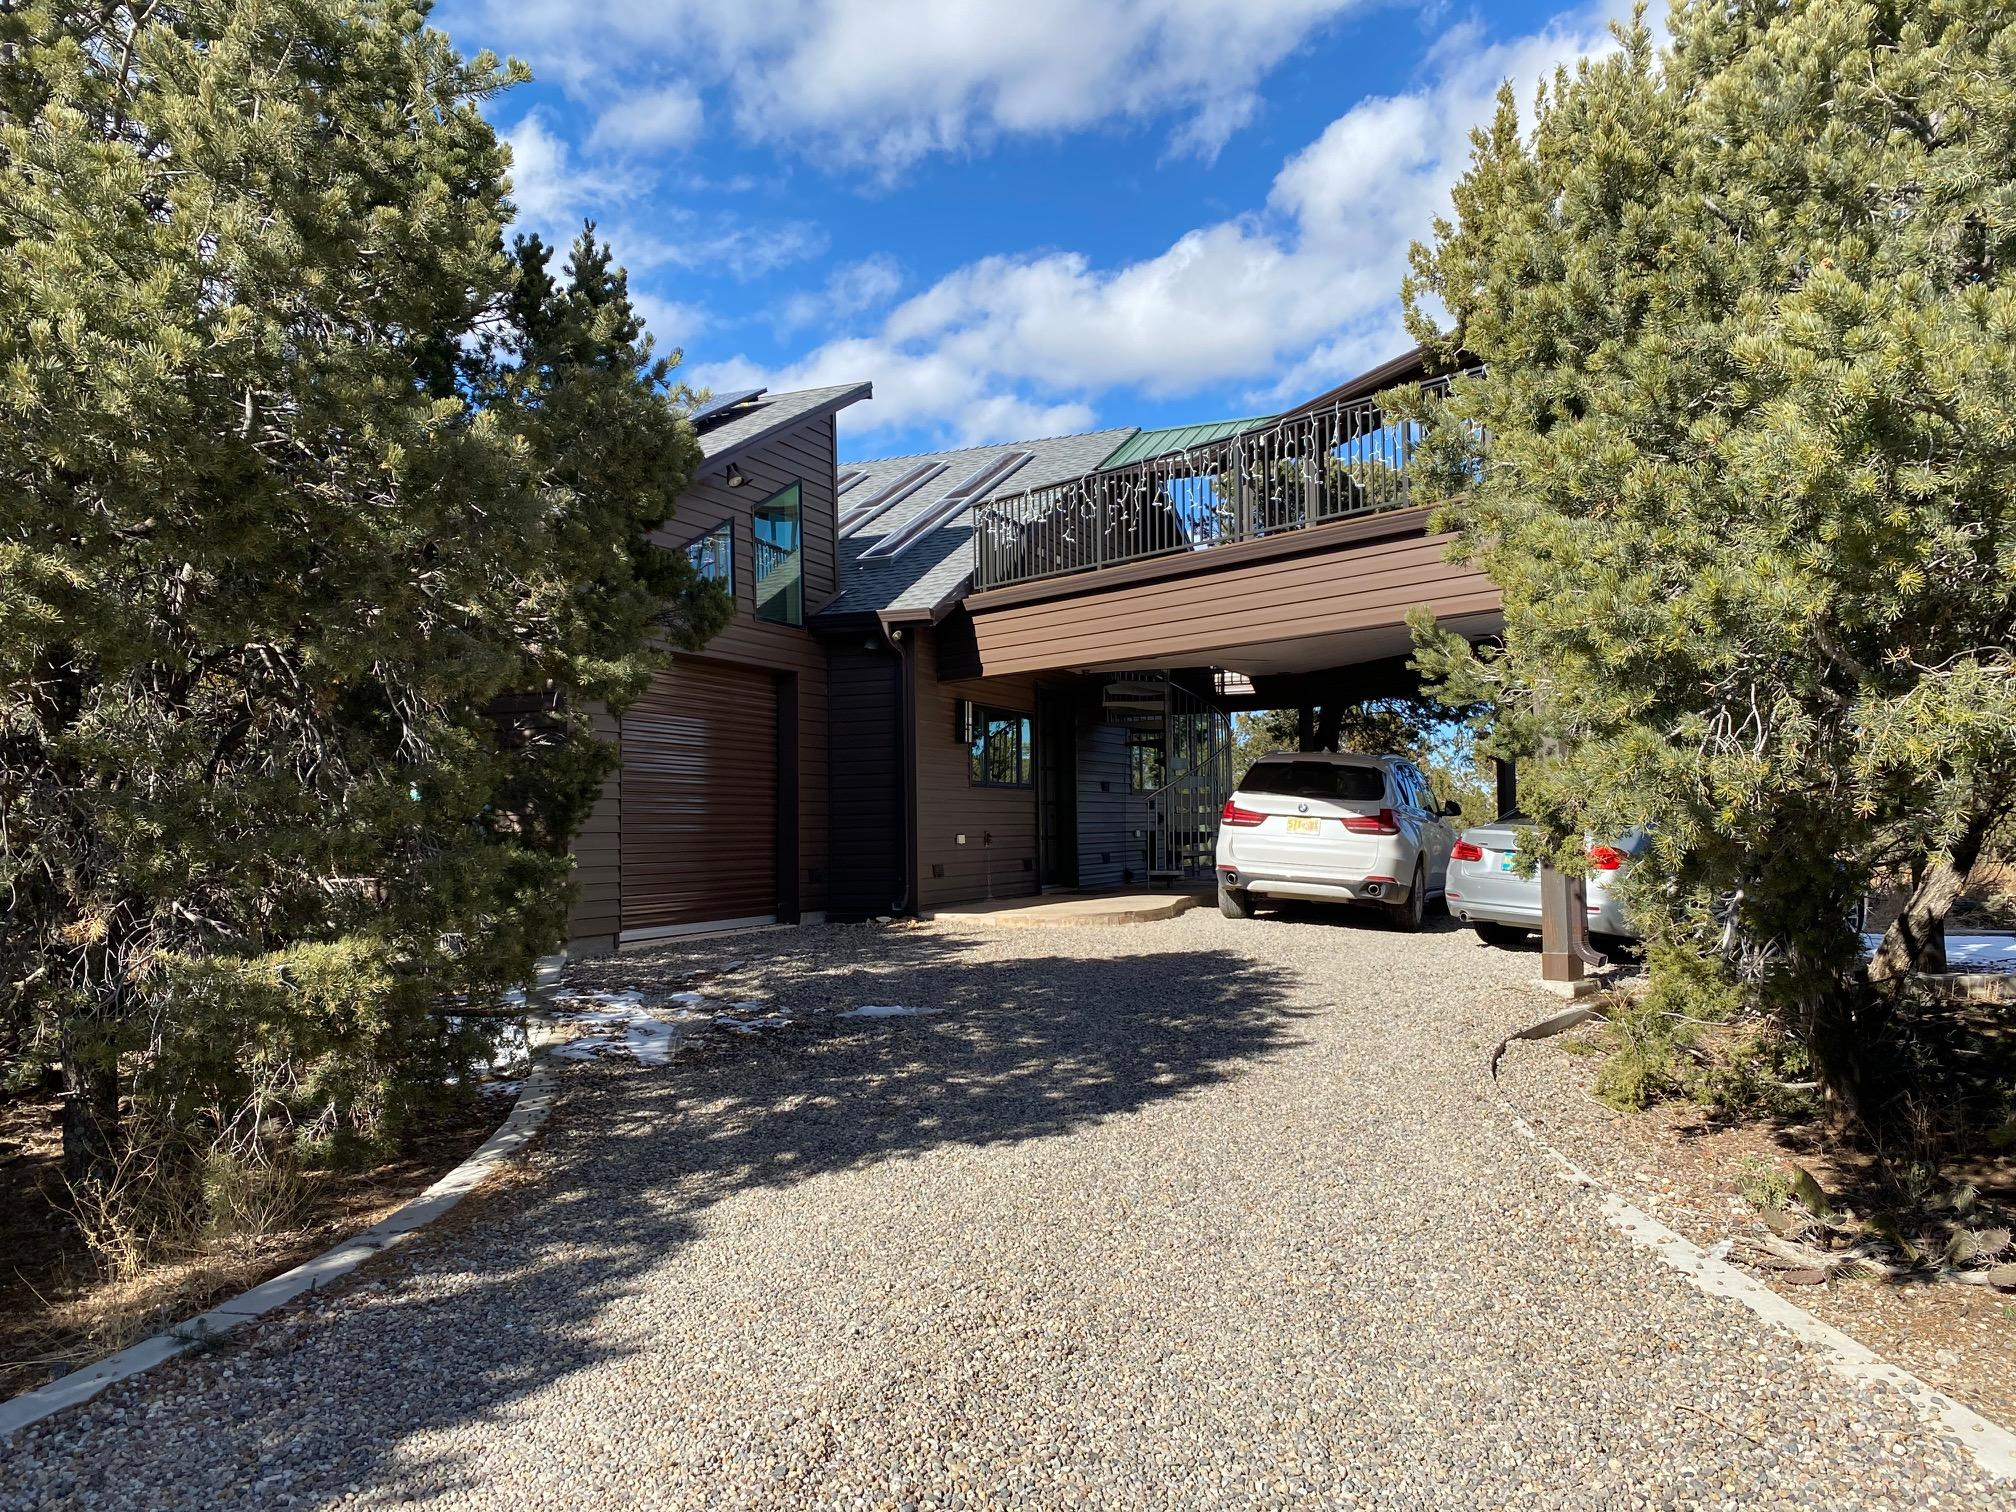 This unique, custom home on 7.5 acres is a one of a kind find. Private, gated subdivision, 3 total lots make up the 7.5 acres. Entranosa water,passive solar  water heater,  radiant floors, and a two way custom gas fireplace.  4 unit Carrier split system also for heat/and ac. Garage is insulated and finished, heated and cooled. Sub zero refrigerator and wine cooler, two built in Miele ovens, lots of direct and indirect lighting. Natural stone tile floors, plastered walls.  Custom trex deck with 360 degree views.